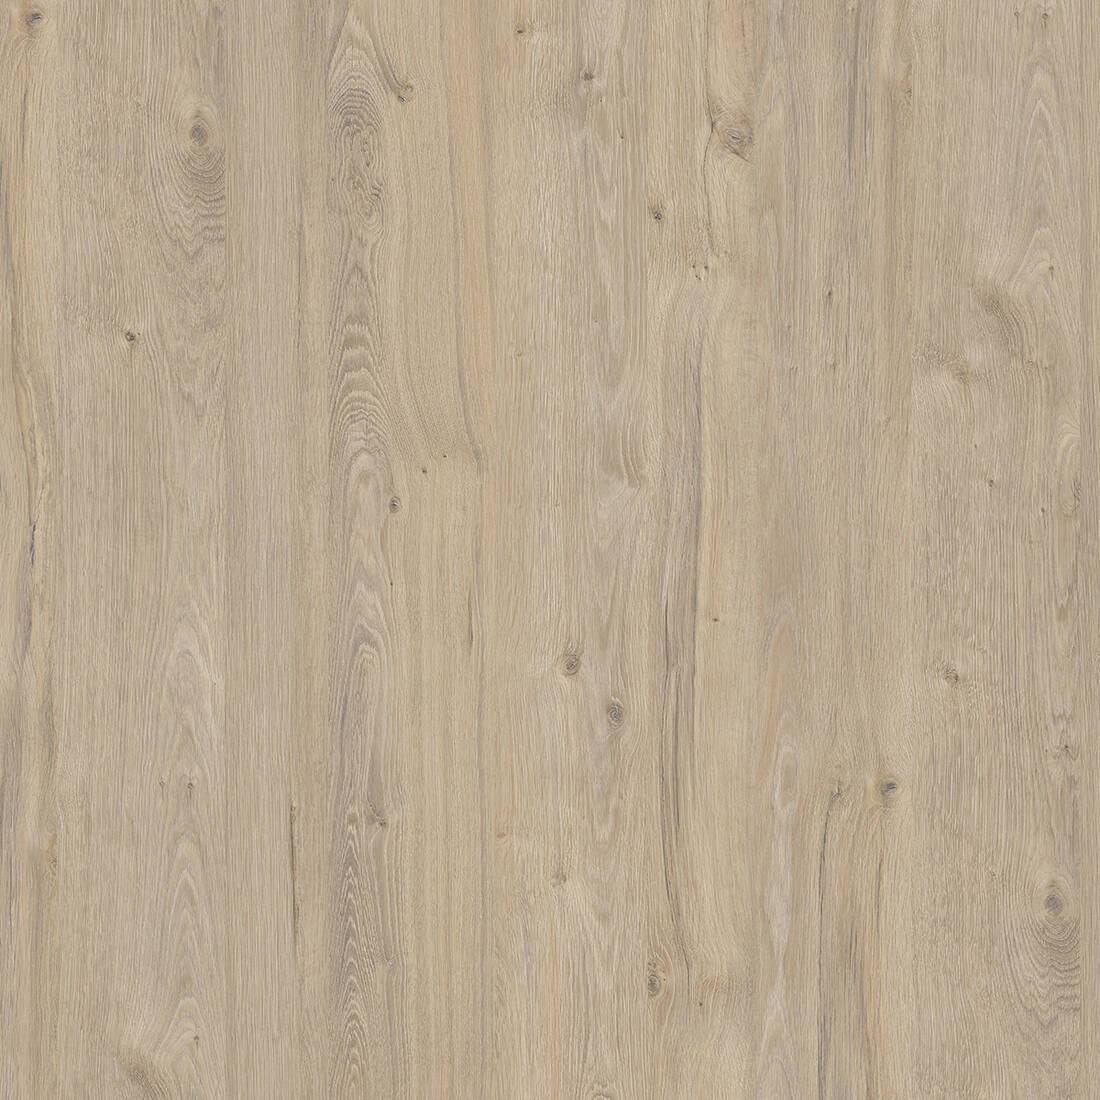 Satin Coastland Oak